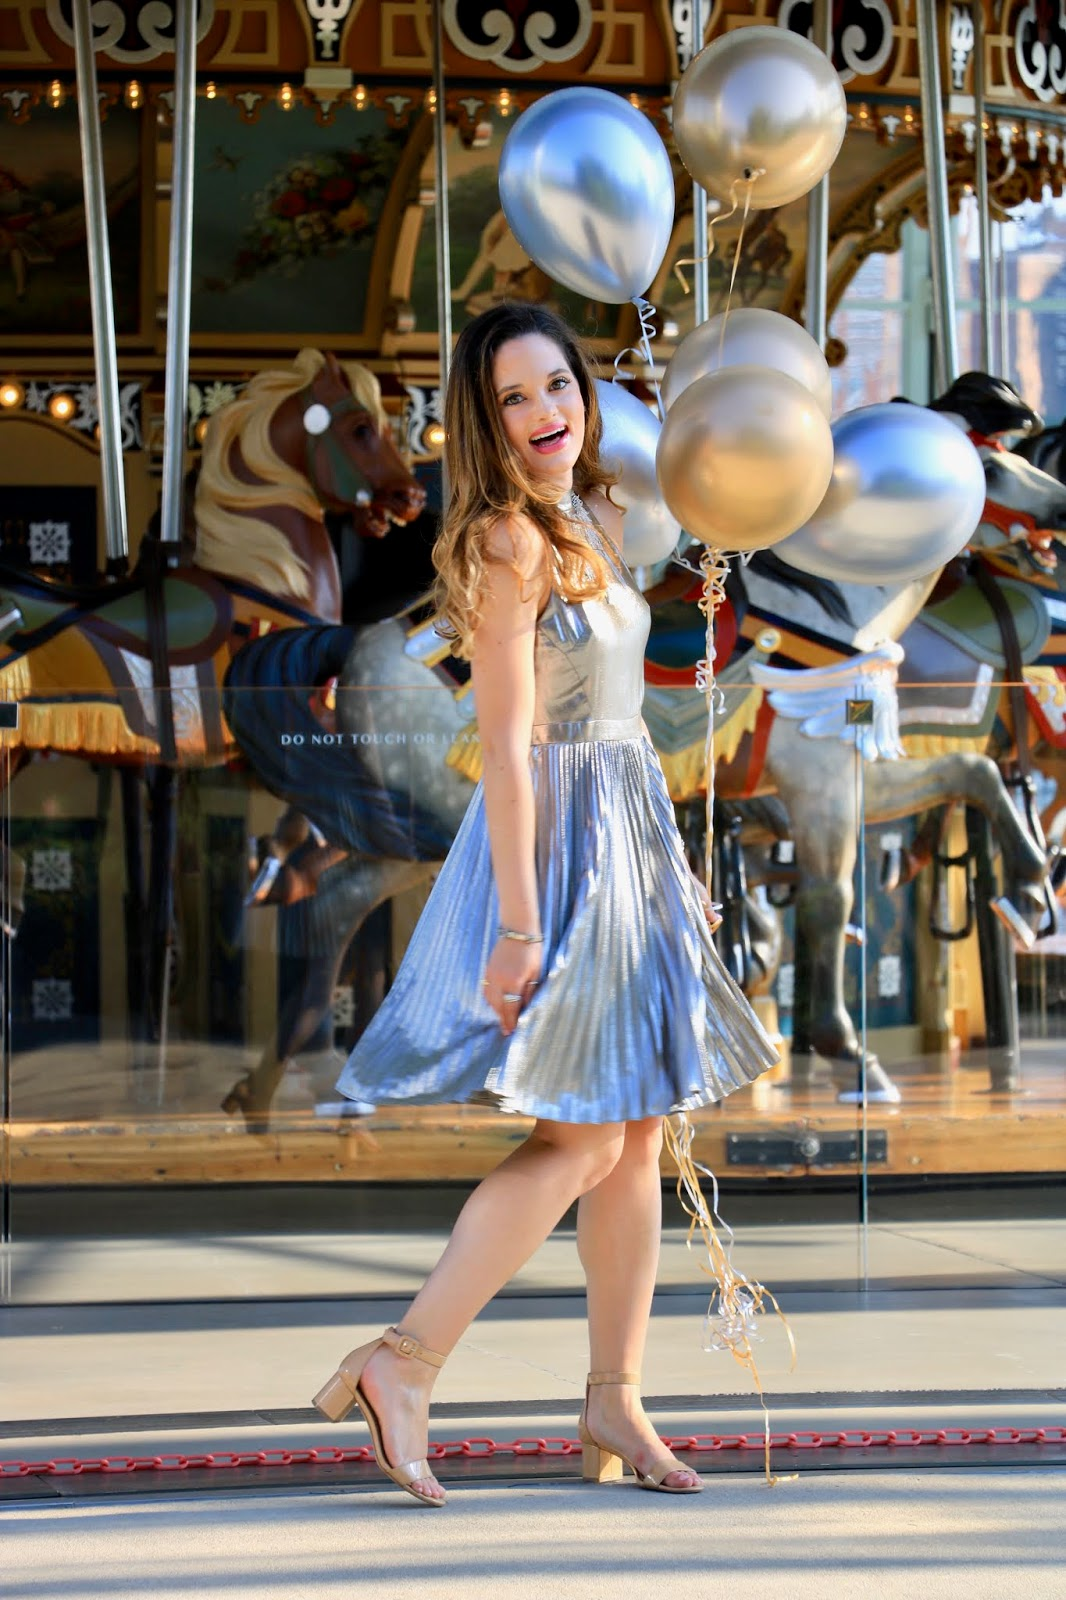 Nyc fashion blogger Kathleen Harper's Jane's Carousel photo shoot